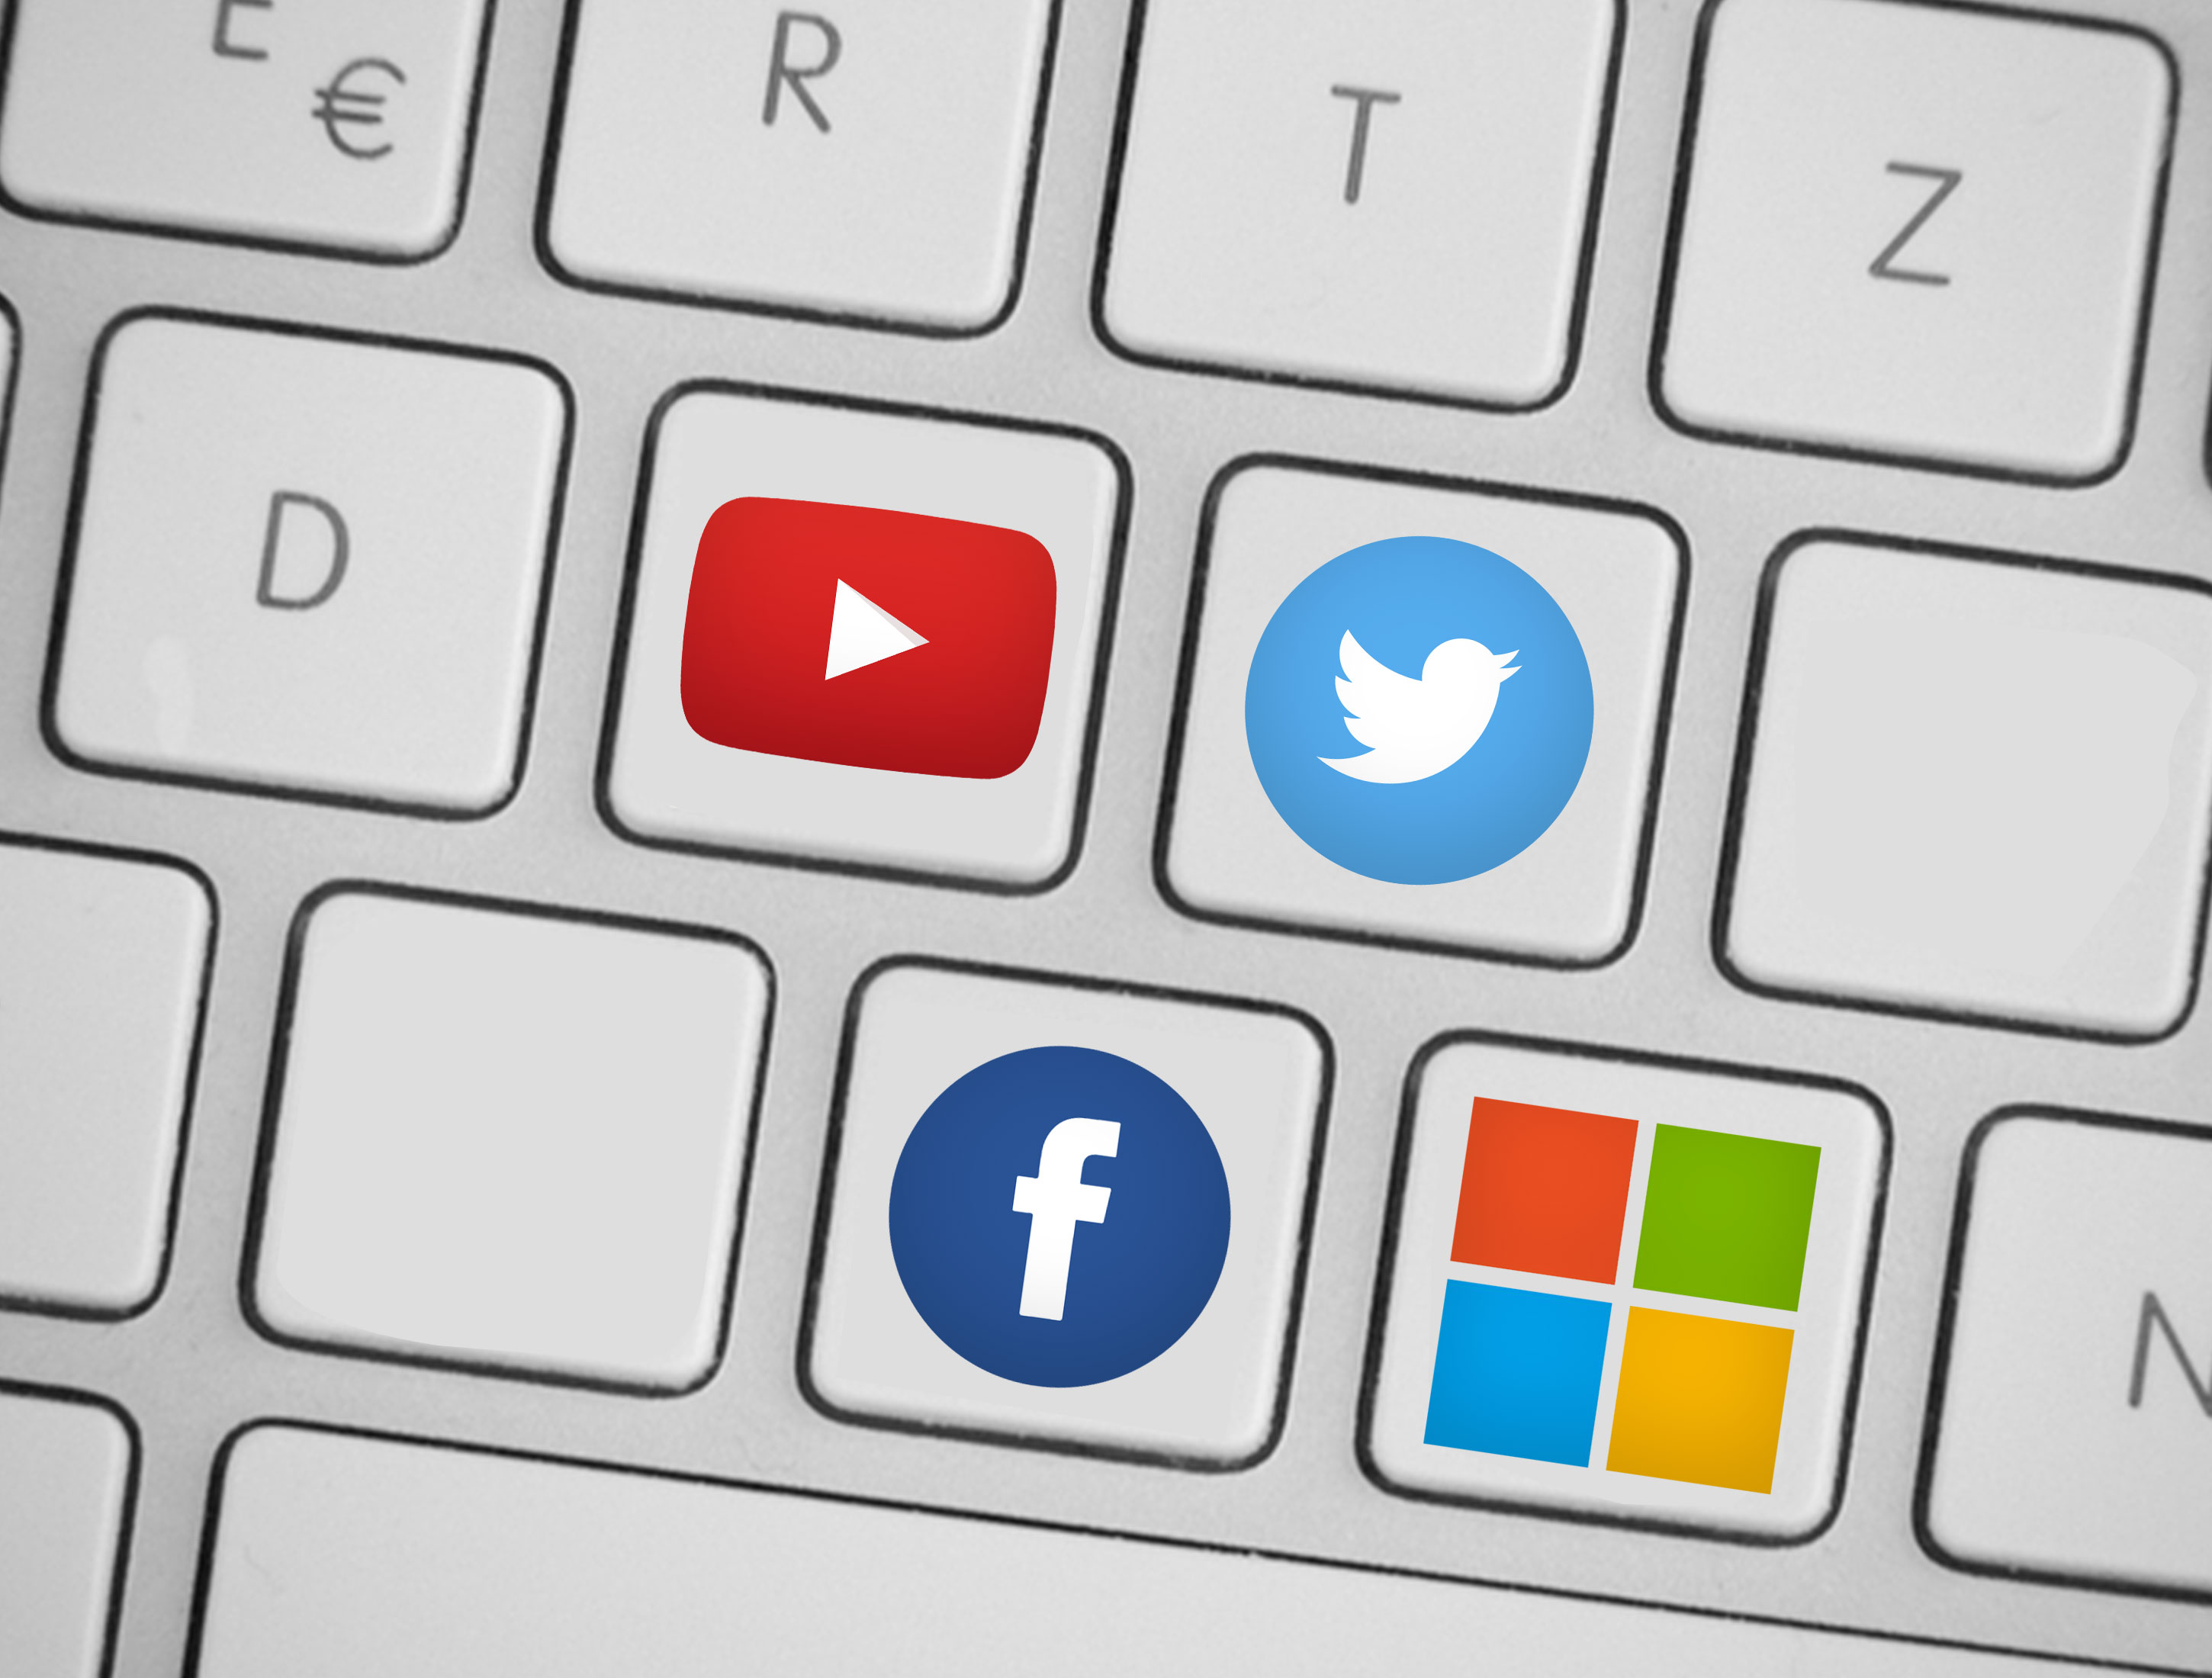 Facebook, Twitter, Microsoft And Google, Joined Hands To Eradicate Violent Activities From Social Media